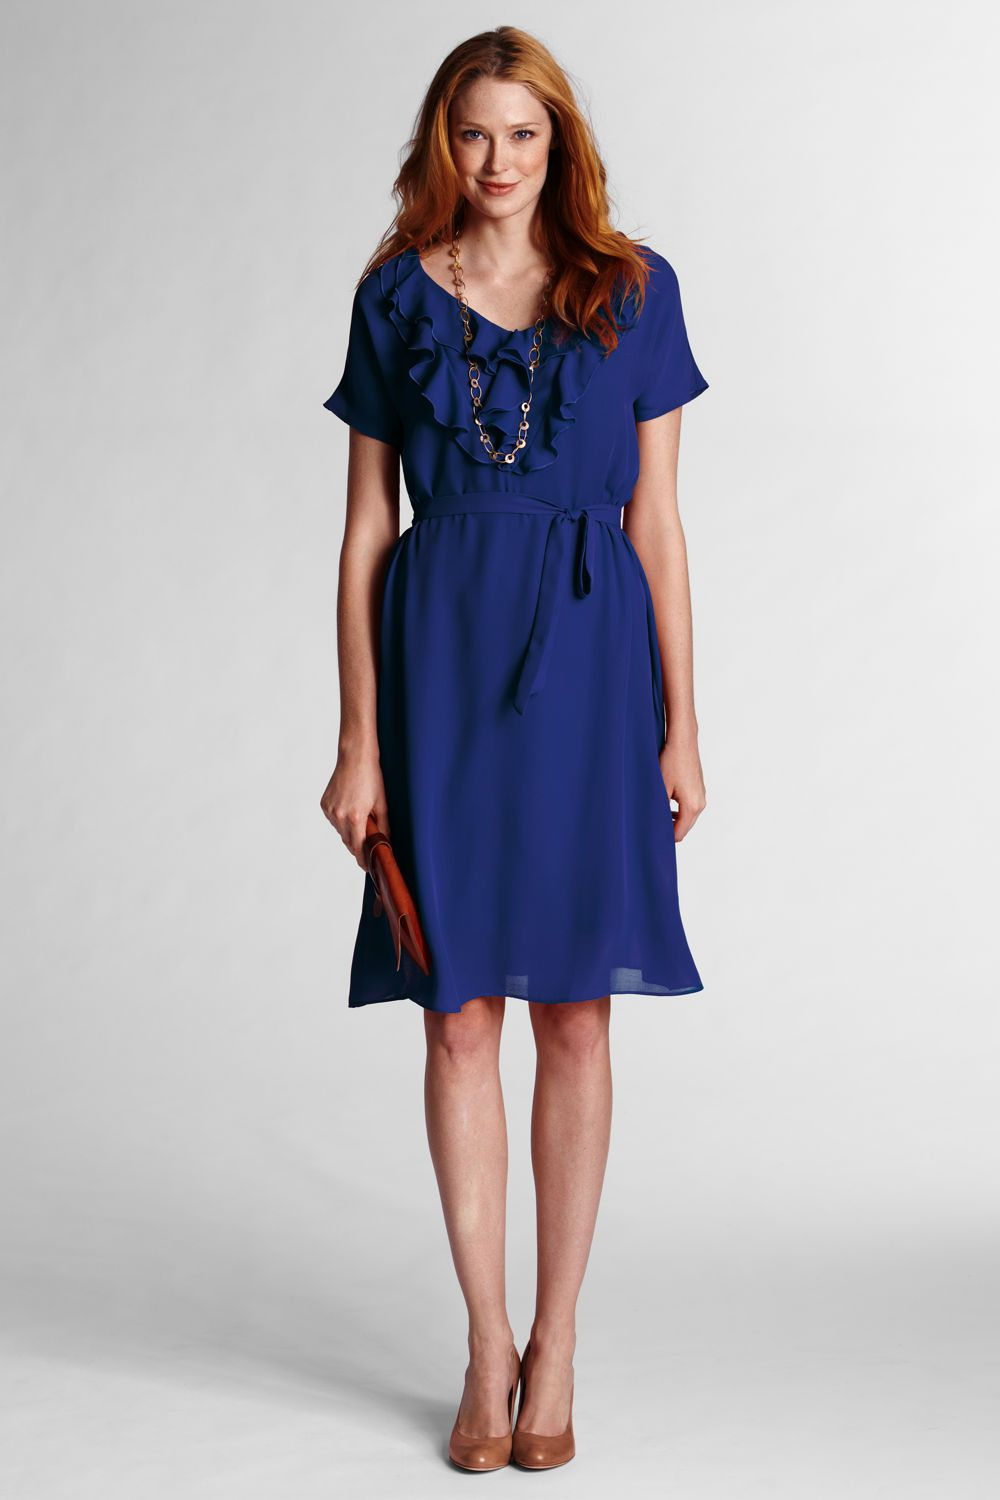 Women's Solid Ruffle Front Georgette Dress from Lands' End